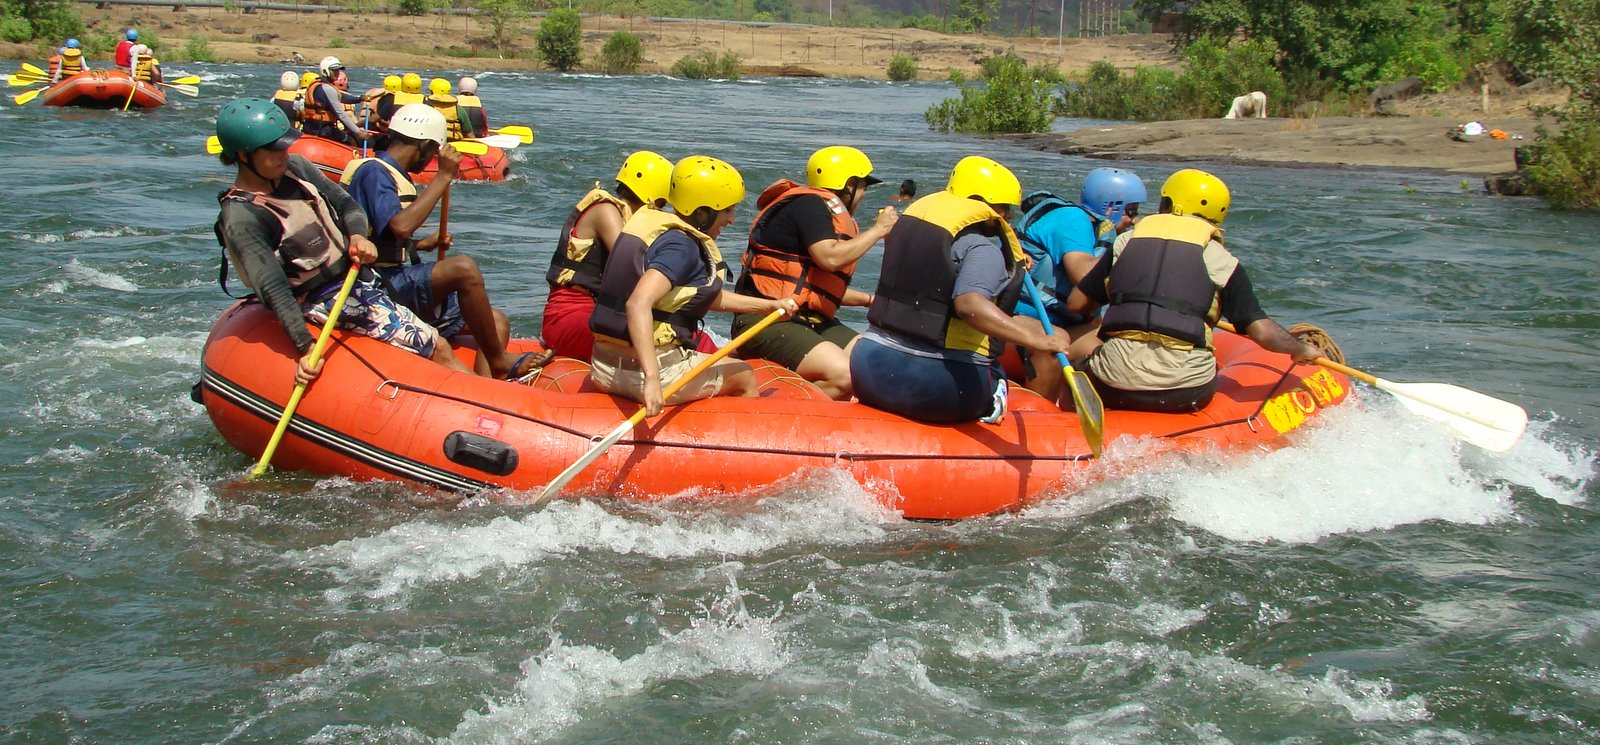 Ride the rapids with friends